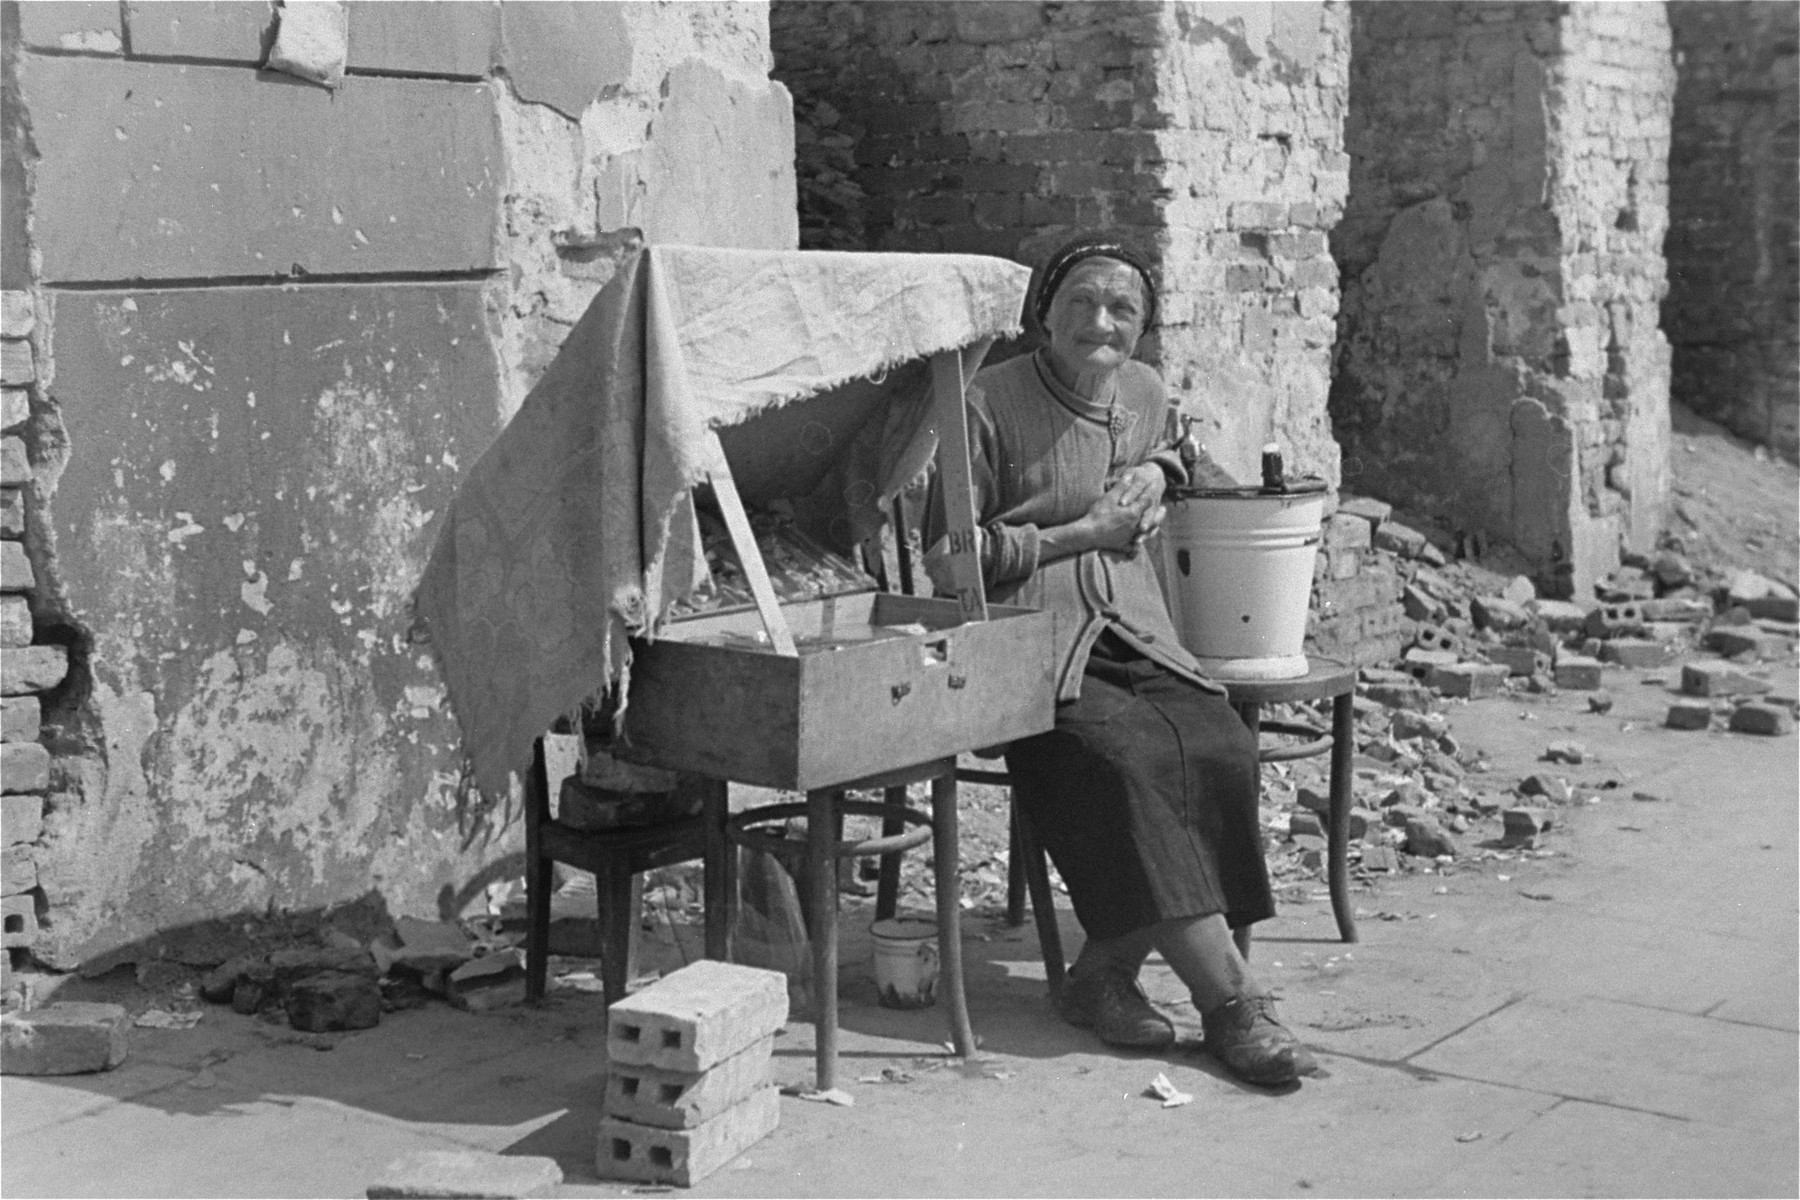 An elderly woman sits next to her makeshift vending stand amid the rubble on a street in the Warsaw ghetto.